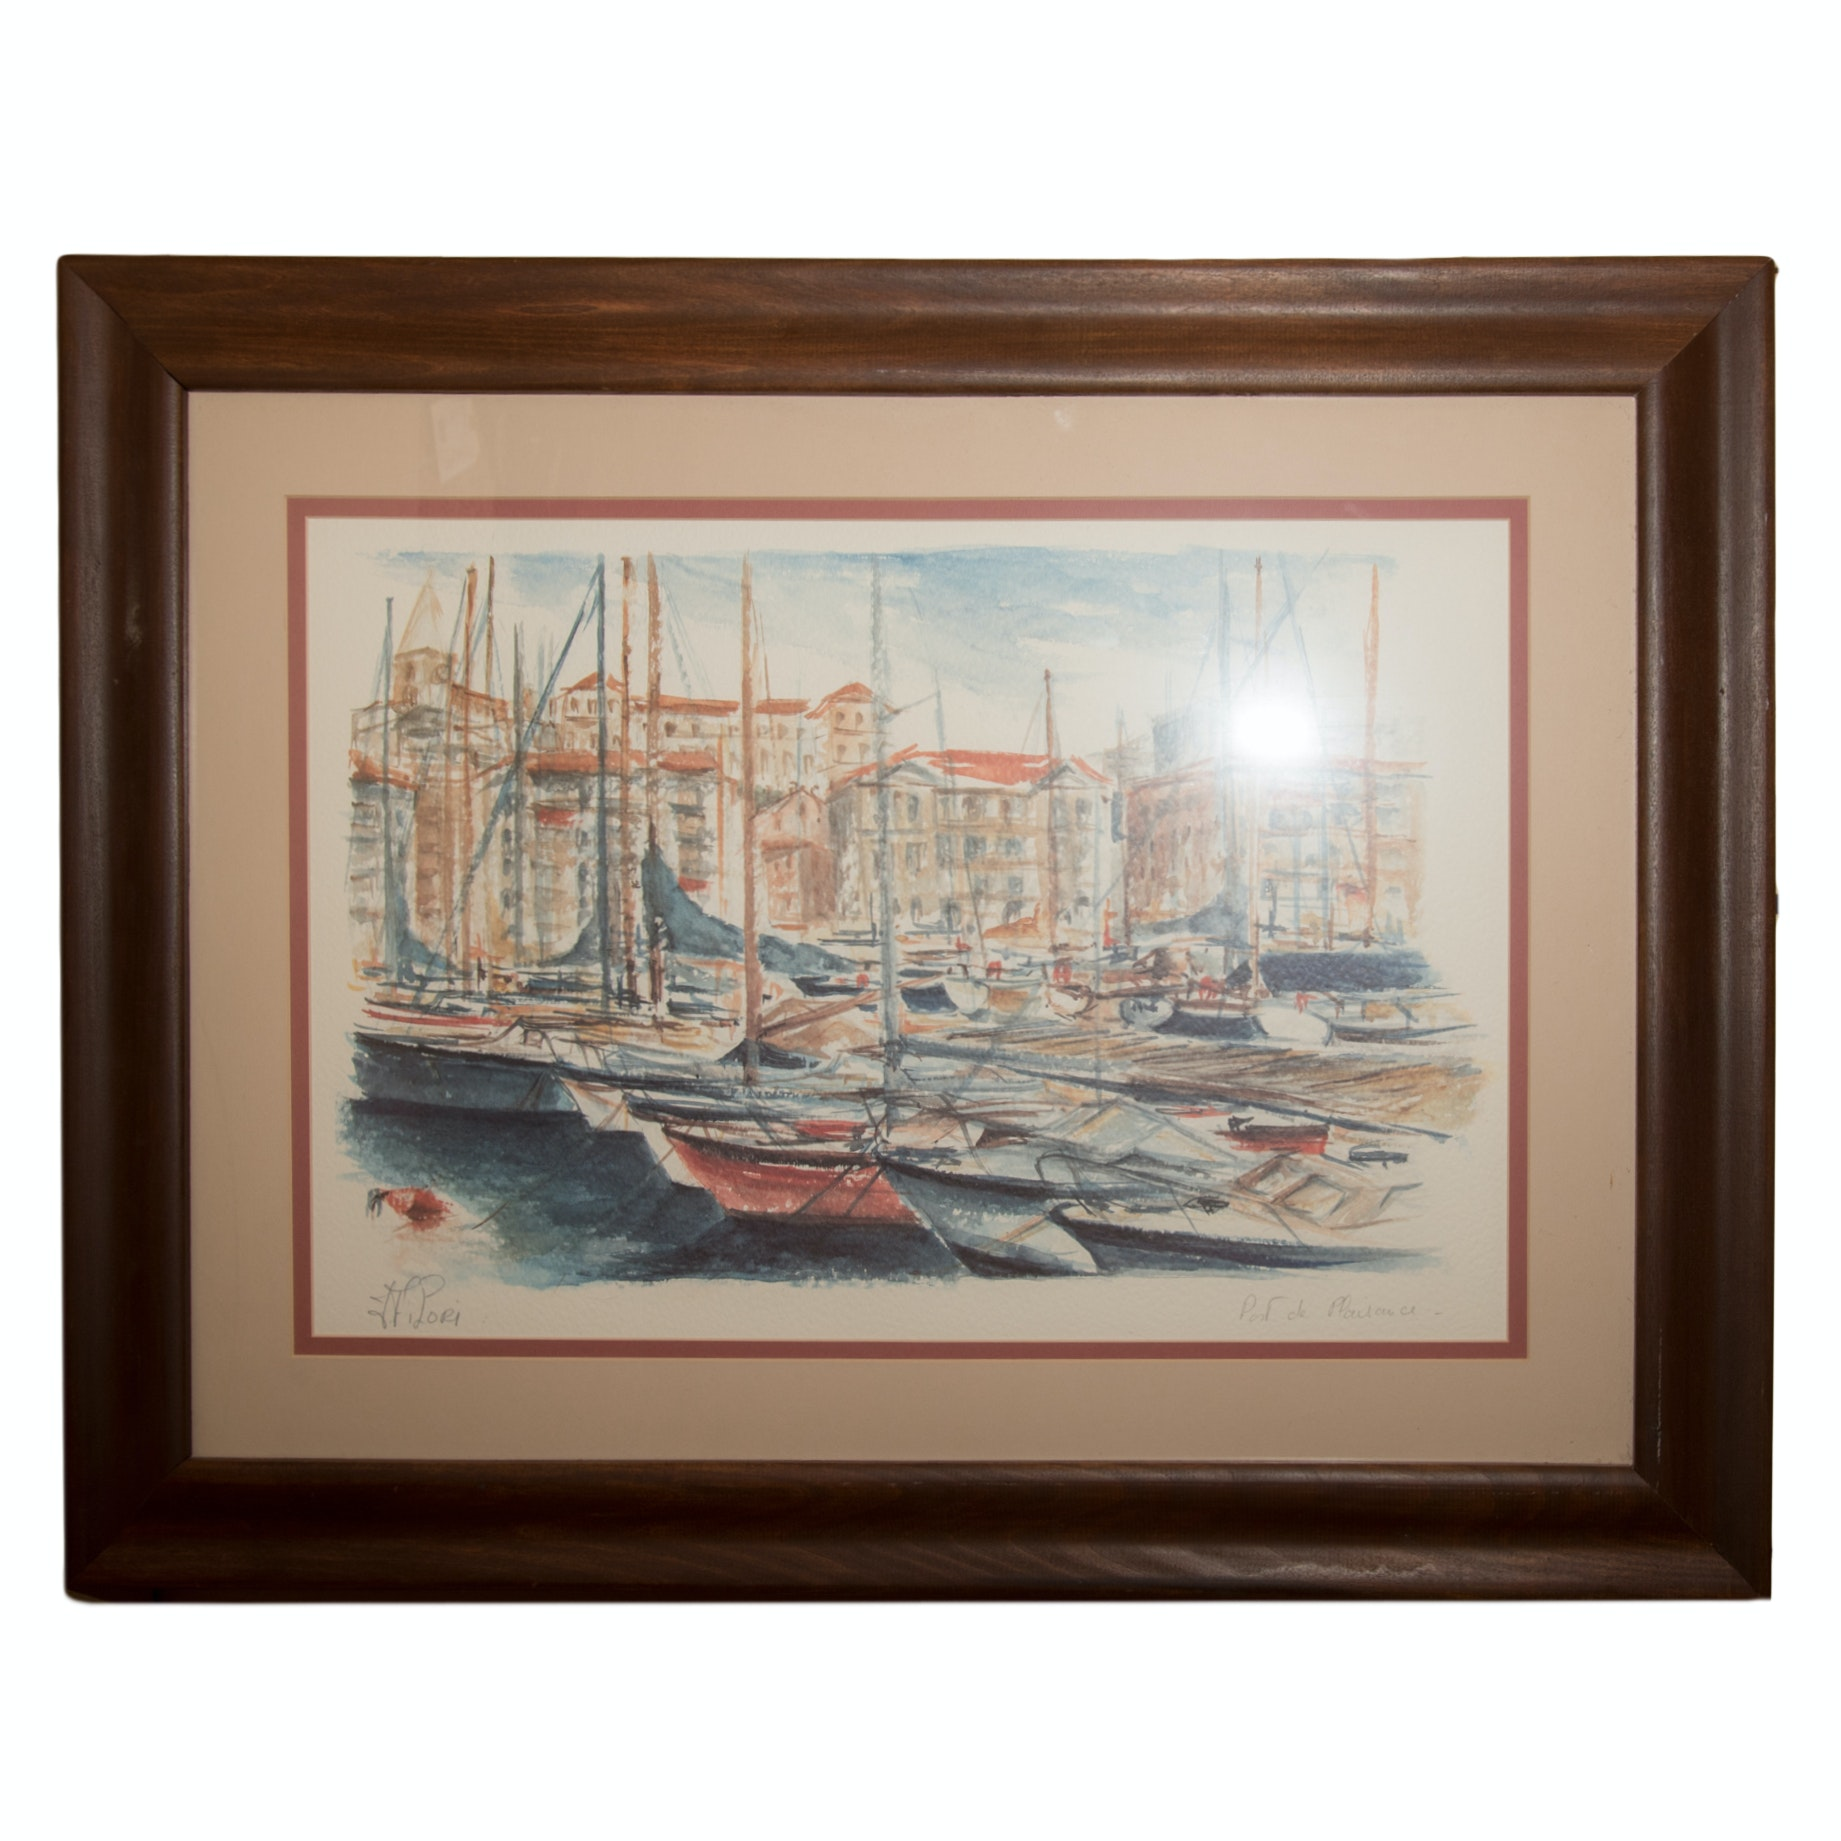 Signed Offset Lithograph after Watercolor of Harbor Scene